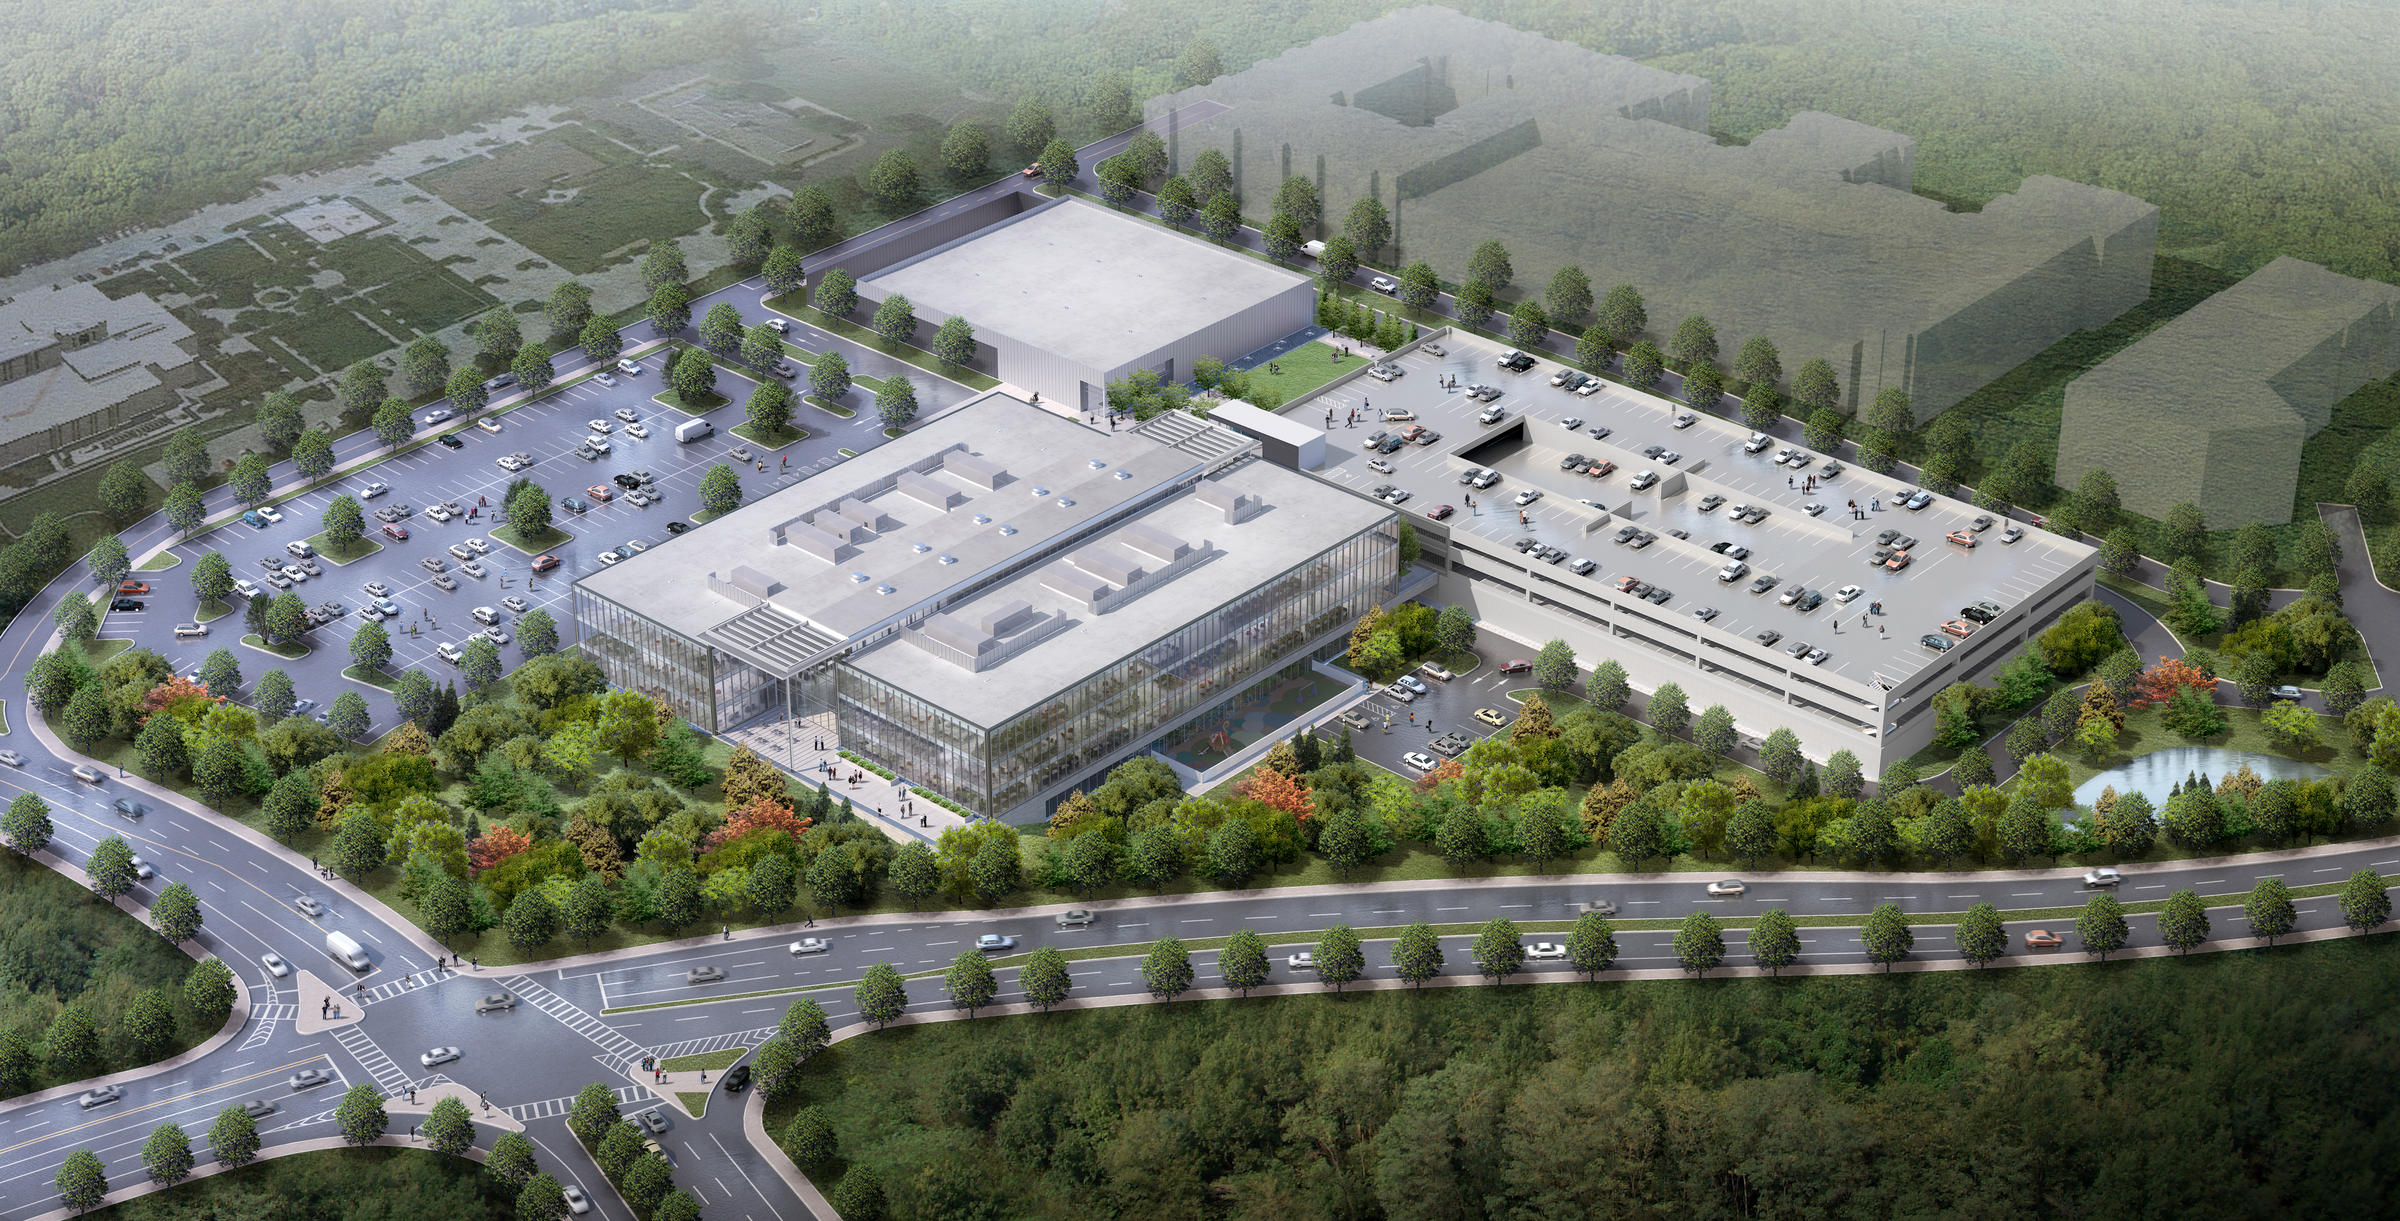 Mercedes benz releases new headquarters renderings wabe for Mercedes benz athens ga